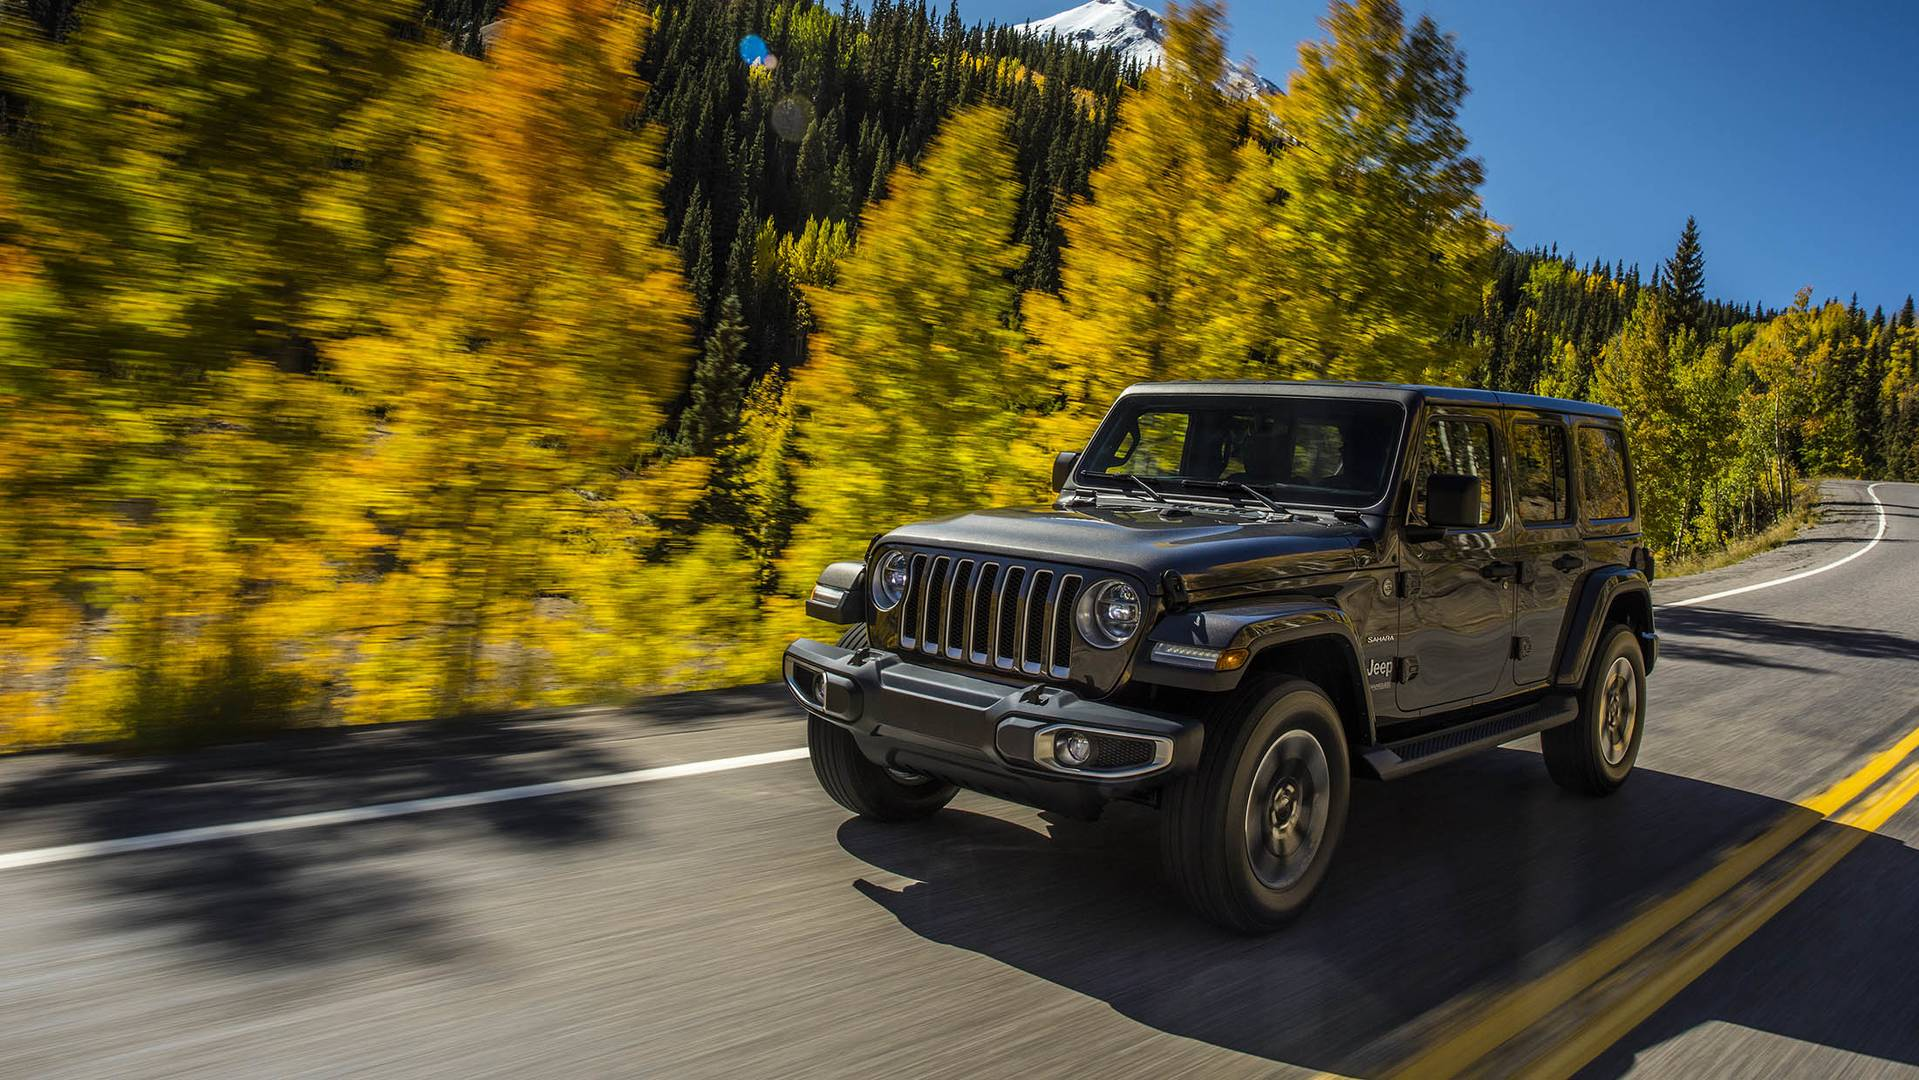 2021 Jeep Wrangler Plug-in Hybrid >> Jeep Wrangler Plug In Hybrid Confirmed For 2020 Model Year